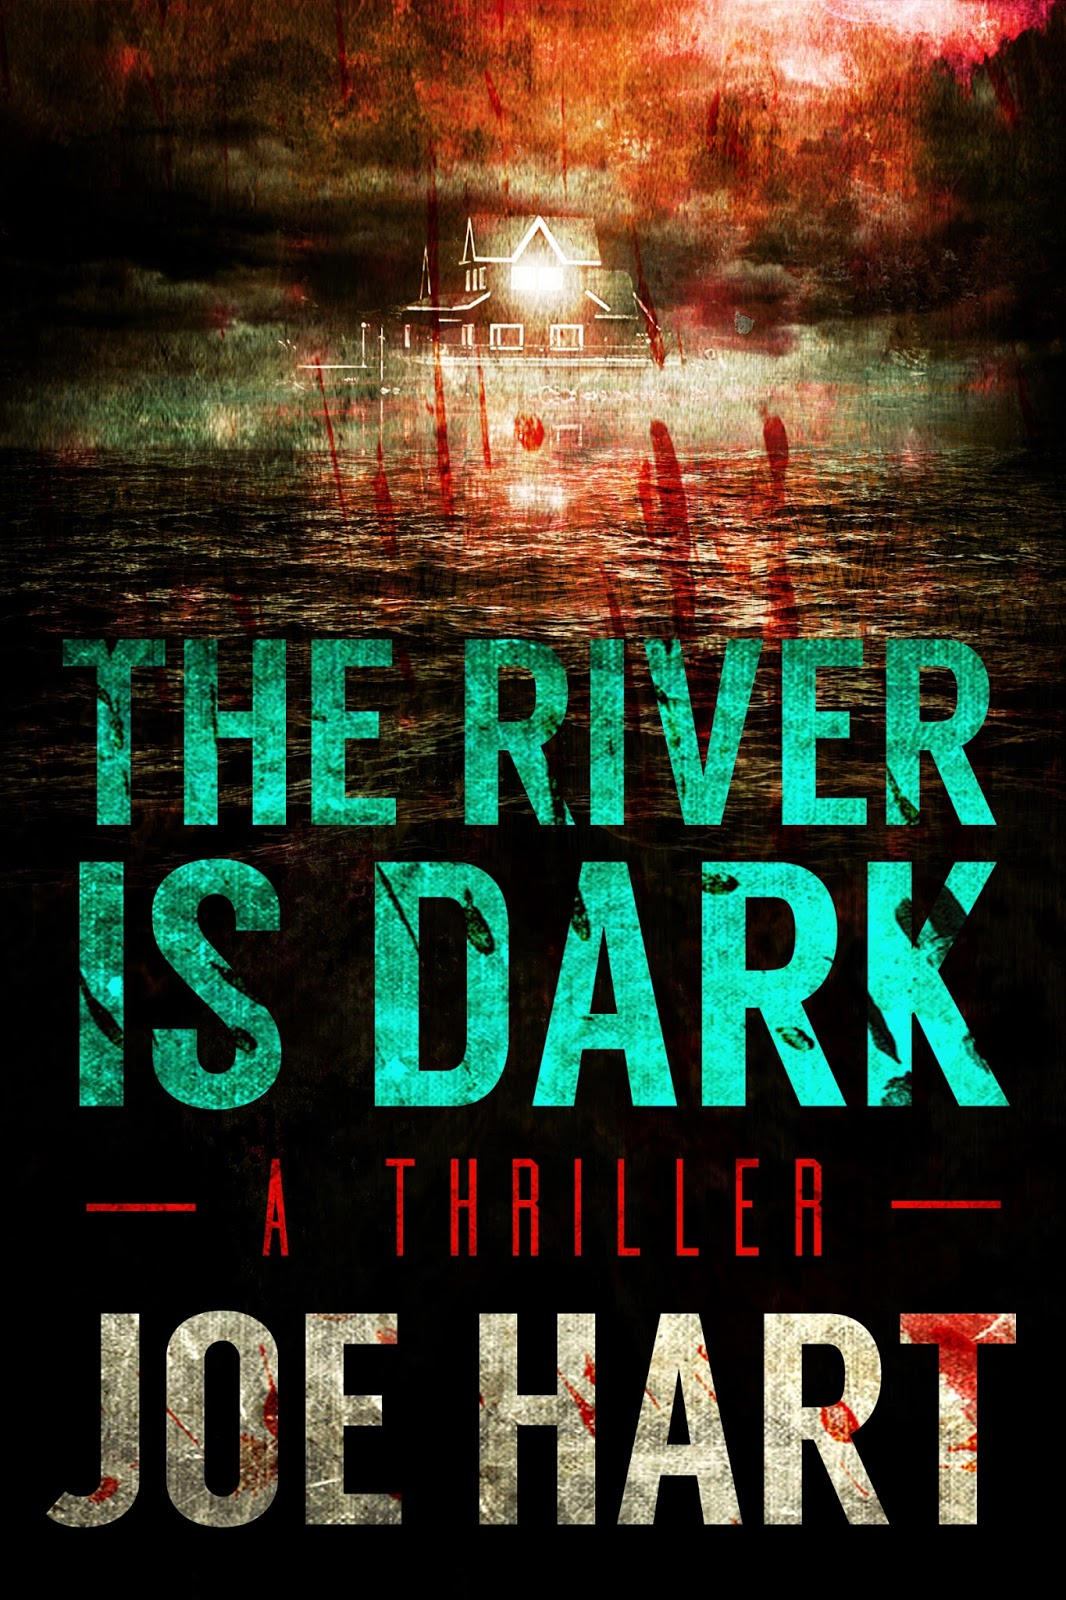 Joe Hart: Five Things I Learned Writing The River Is Dark